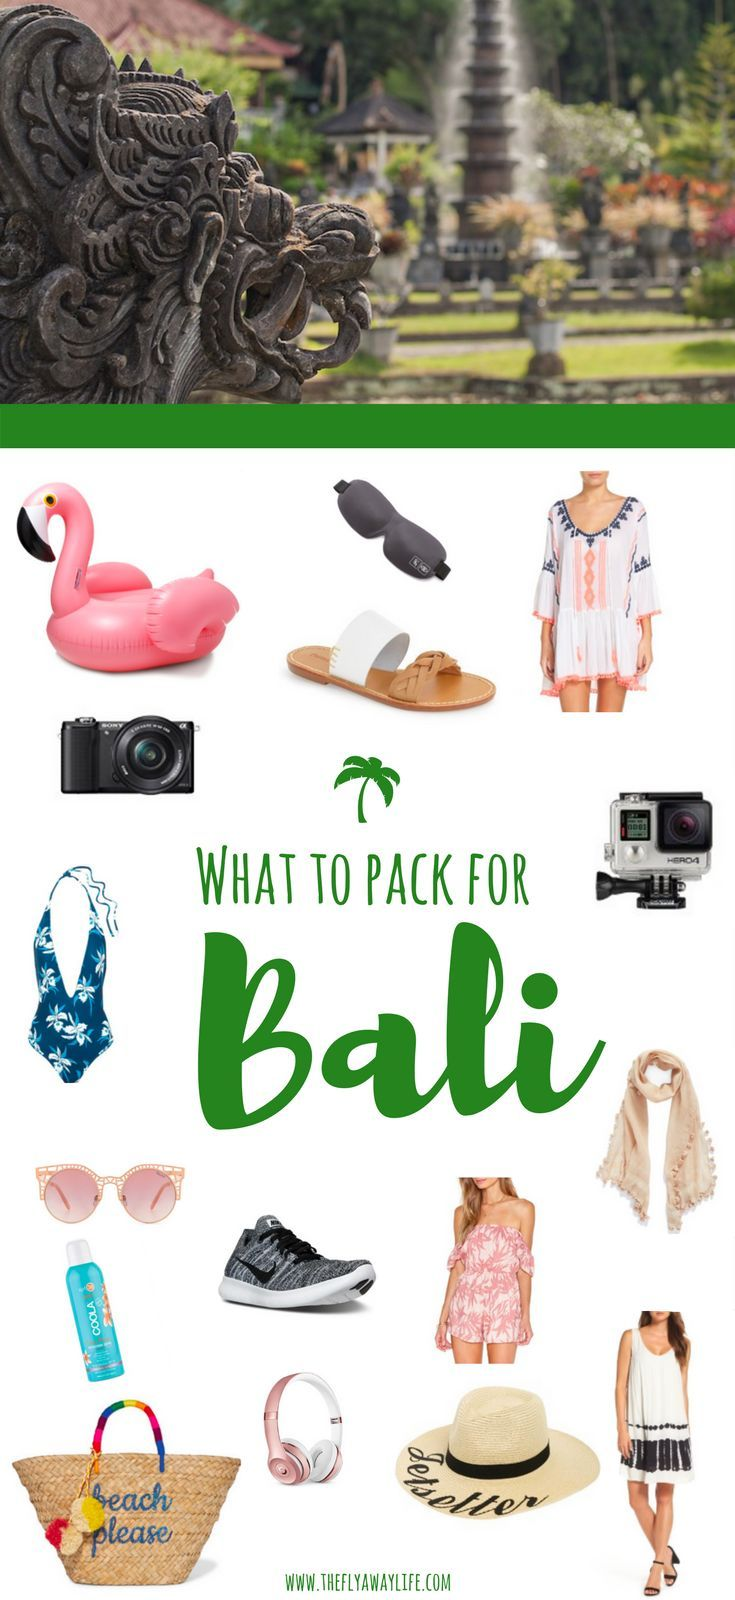 Wondering what to pack for Bali, Indonesia? This Bali packing list will help you decide what to wear in Bali & make sure you don't forget any essentials!